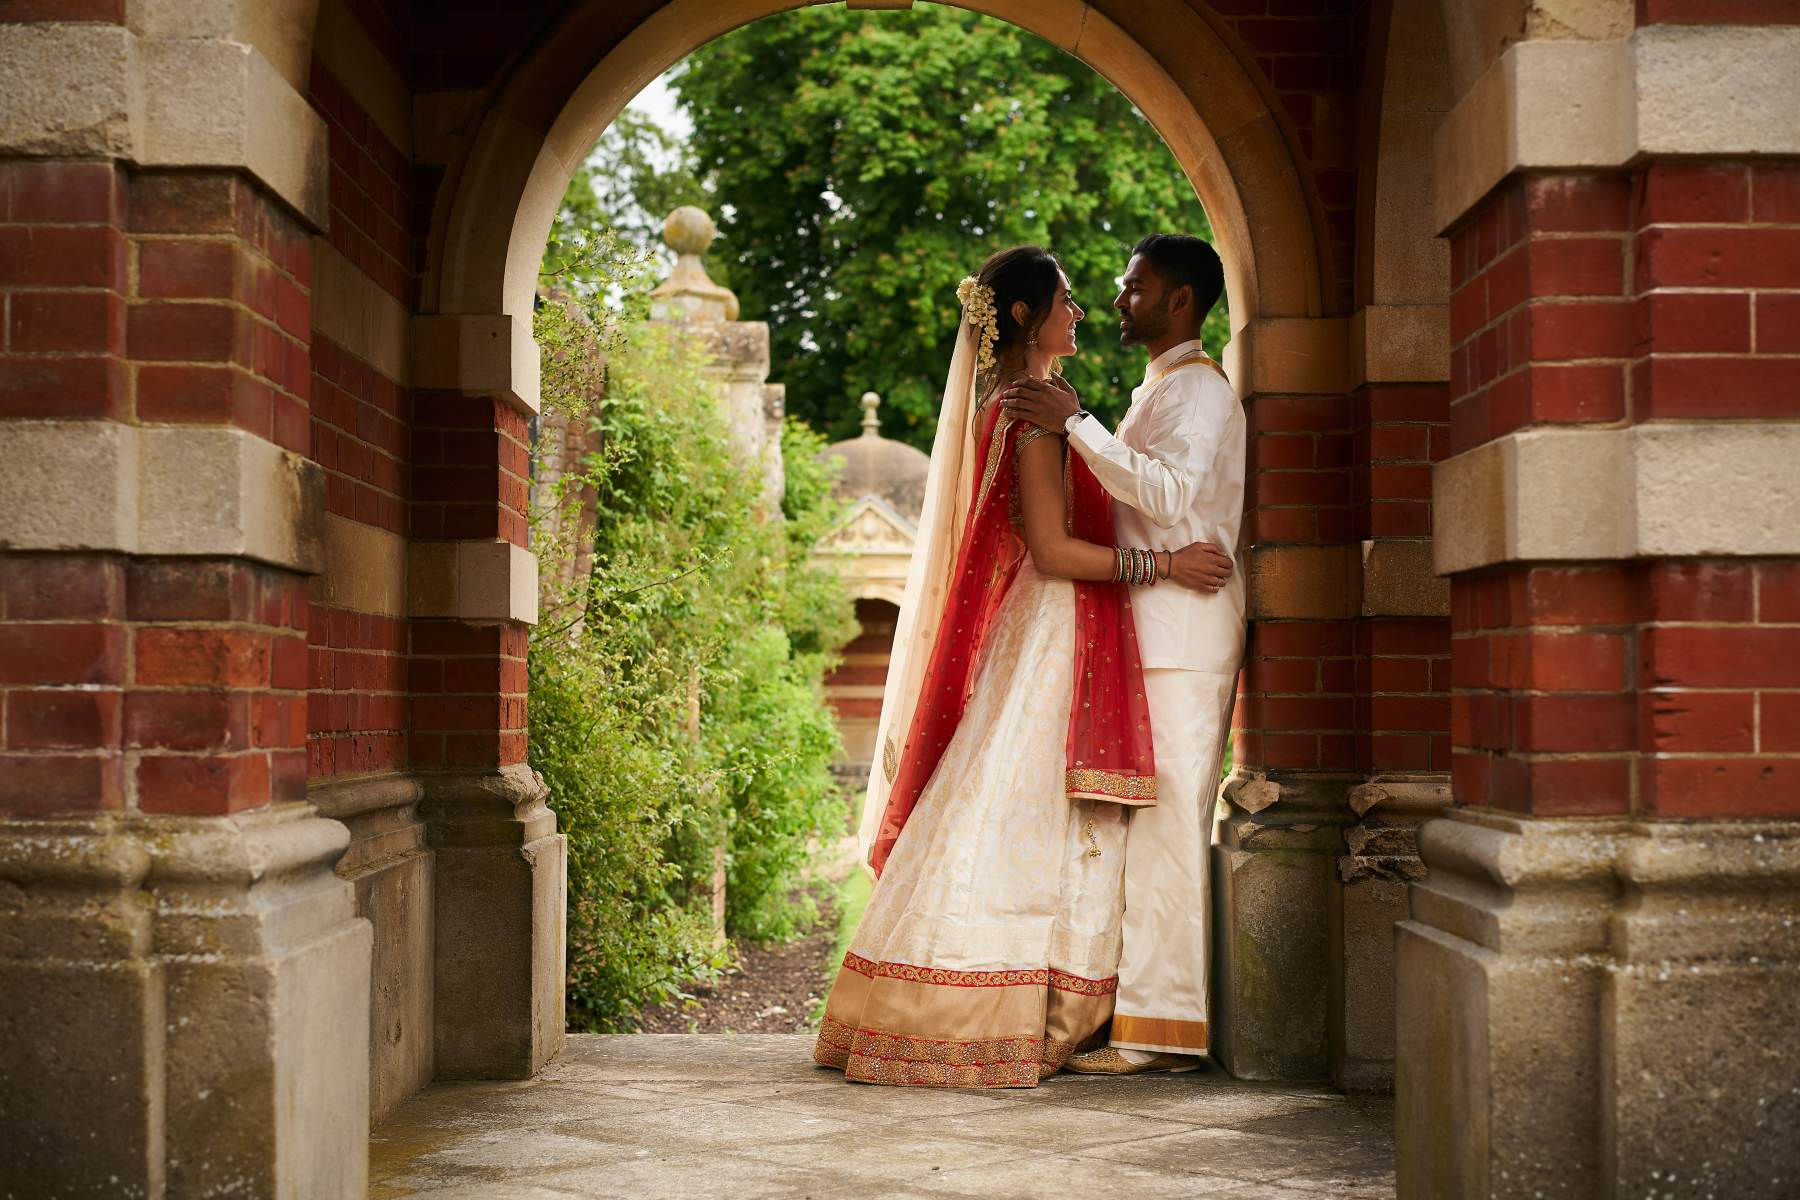 Asian Wedding North Mymms Park Hertfordshire Sheena and Yarh